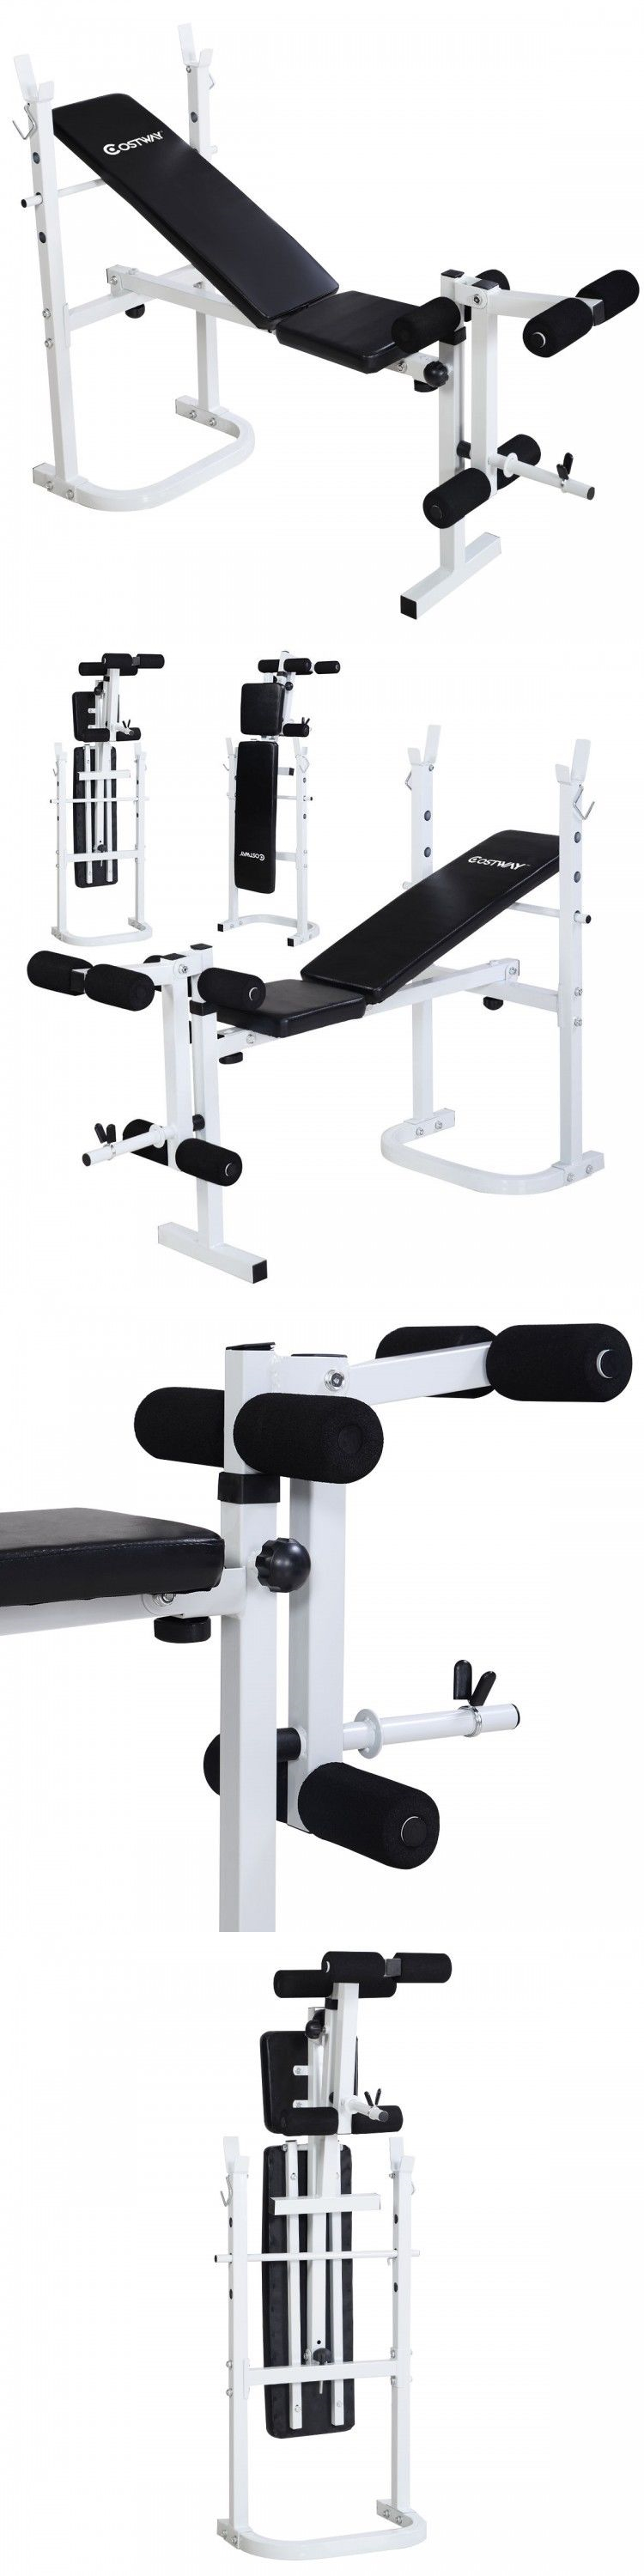 Weight Sets 179818: Weight Bench Set All In 1 Olympic Home Gym Equipment Workout Exercise Fitness BUY IT NOW ONLY: $119.25